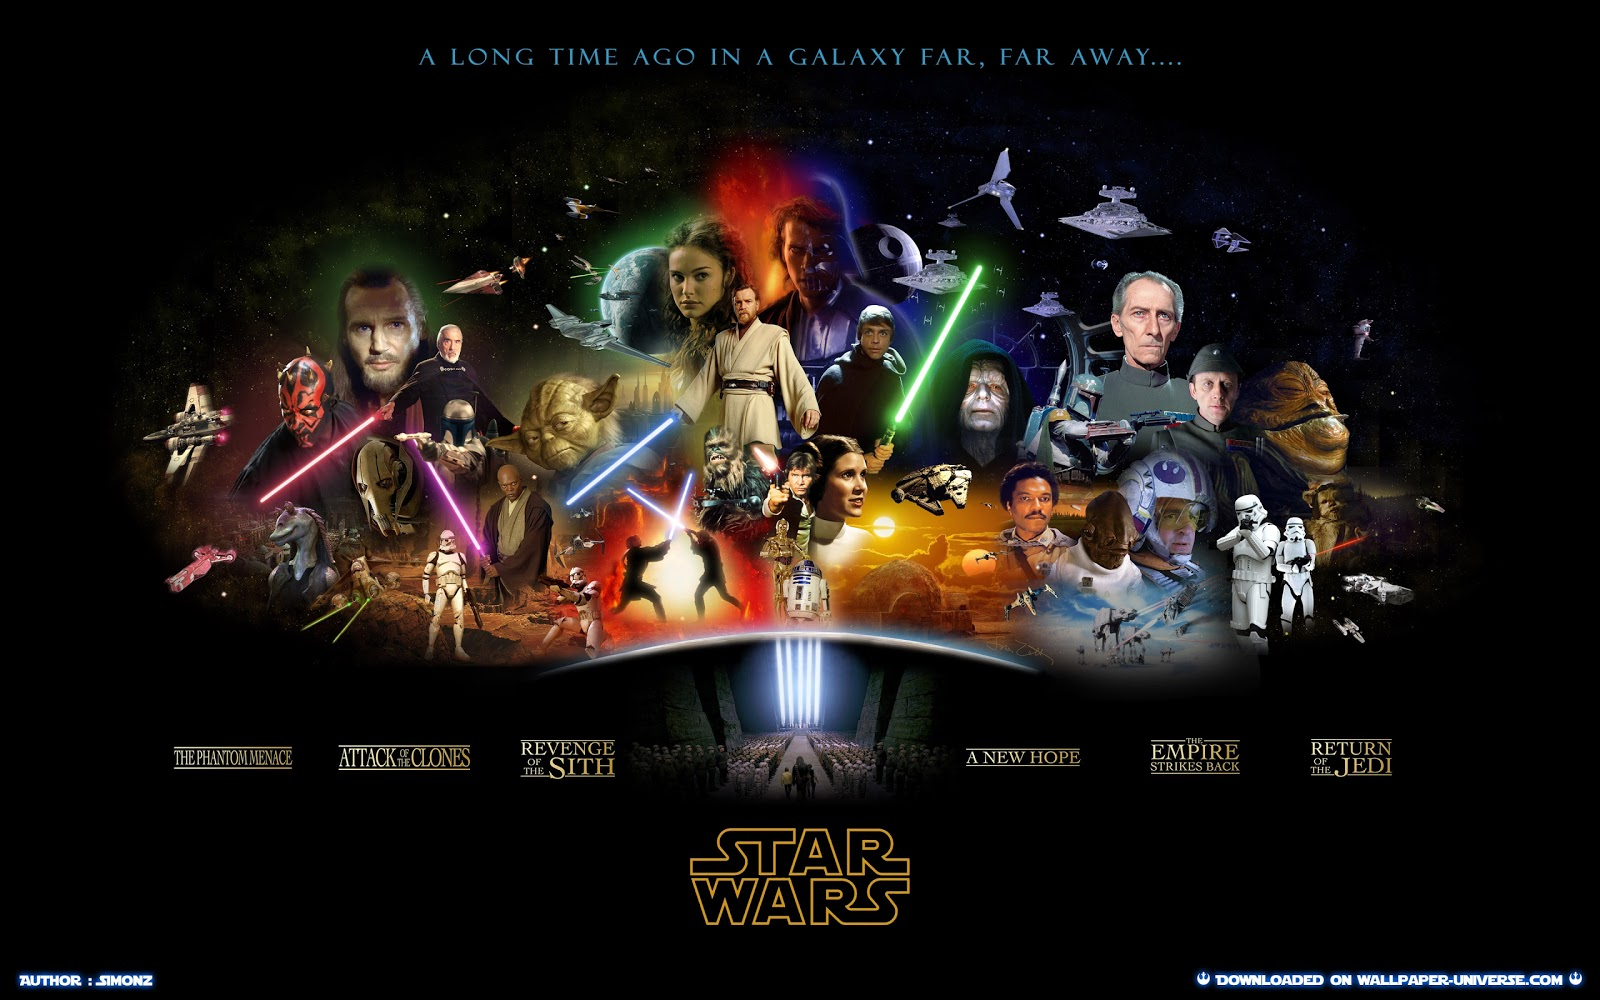 MOVIE HYPE SA STARS WARS EPISODE 7 ANNOUNCEMENT